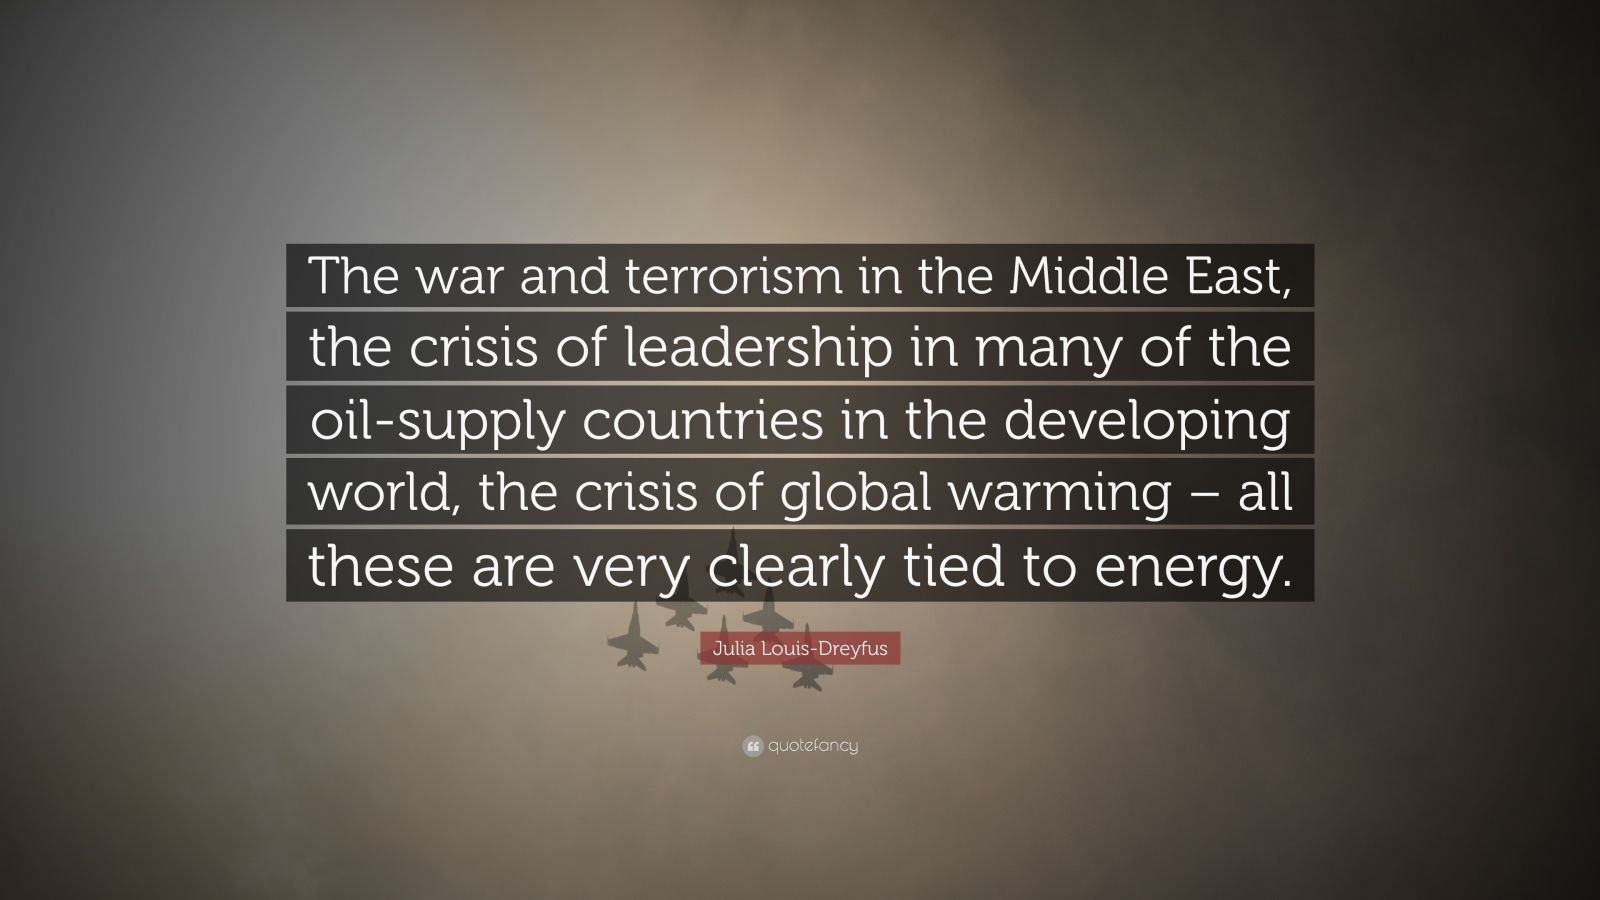 terrorism in the middle east pdf